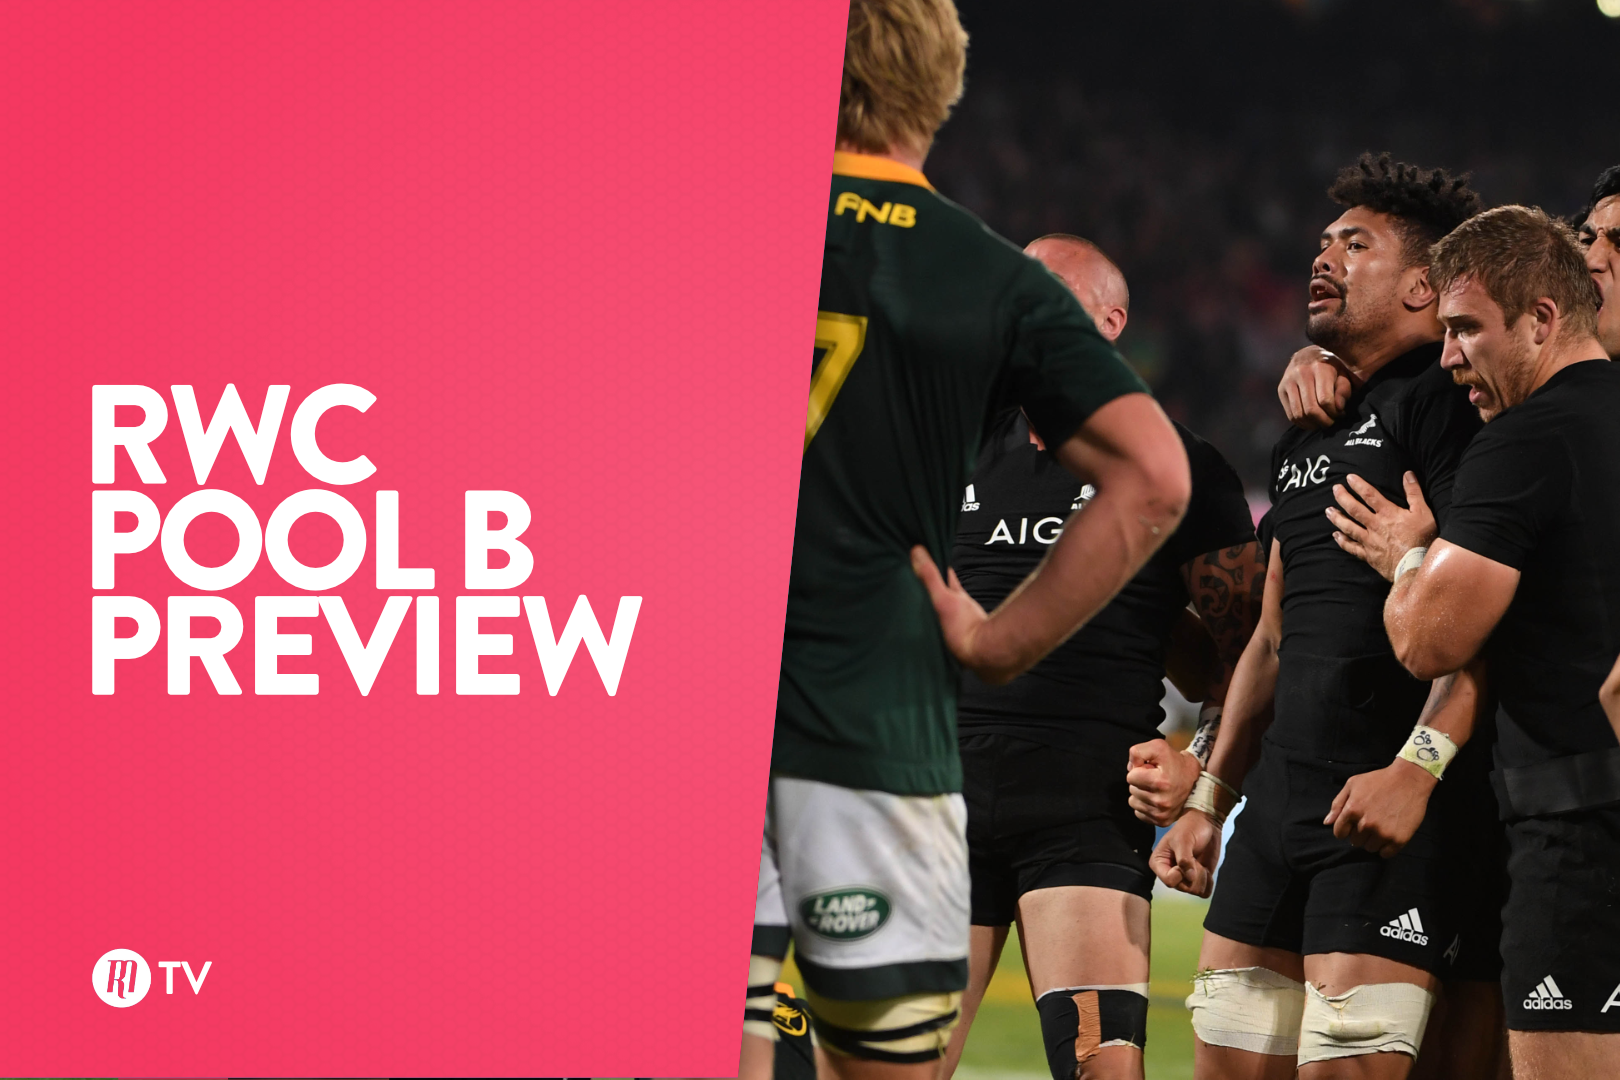 RWC Pool B Preview: Fantasy Show